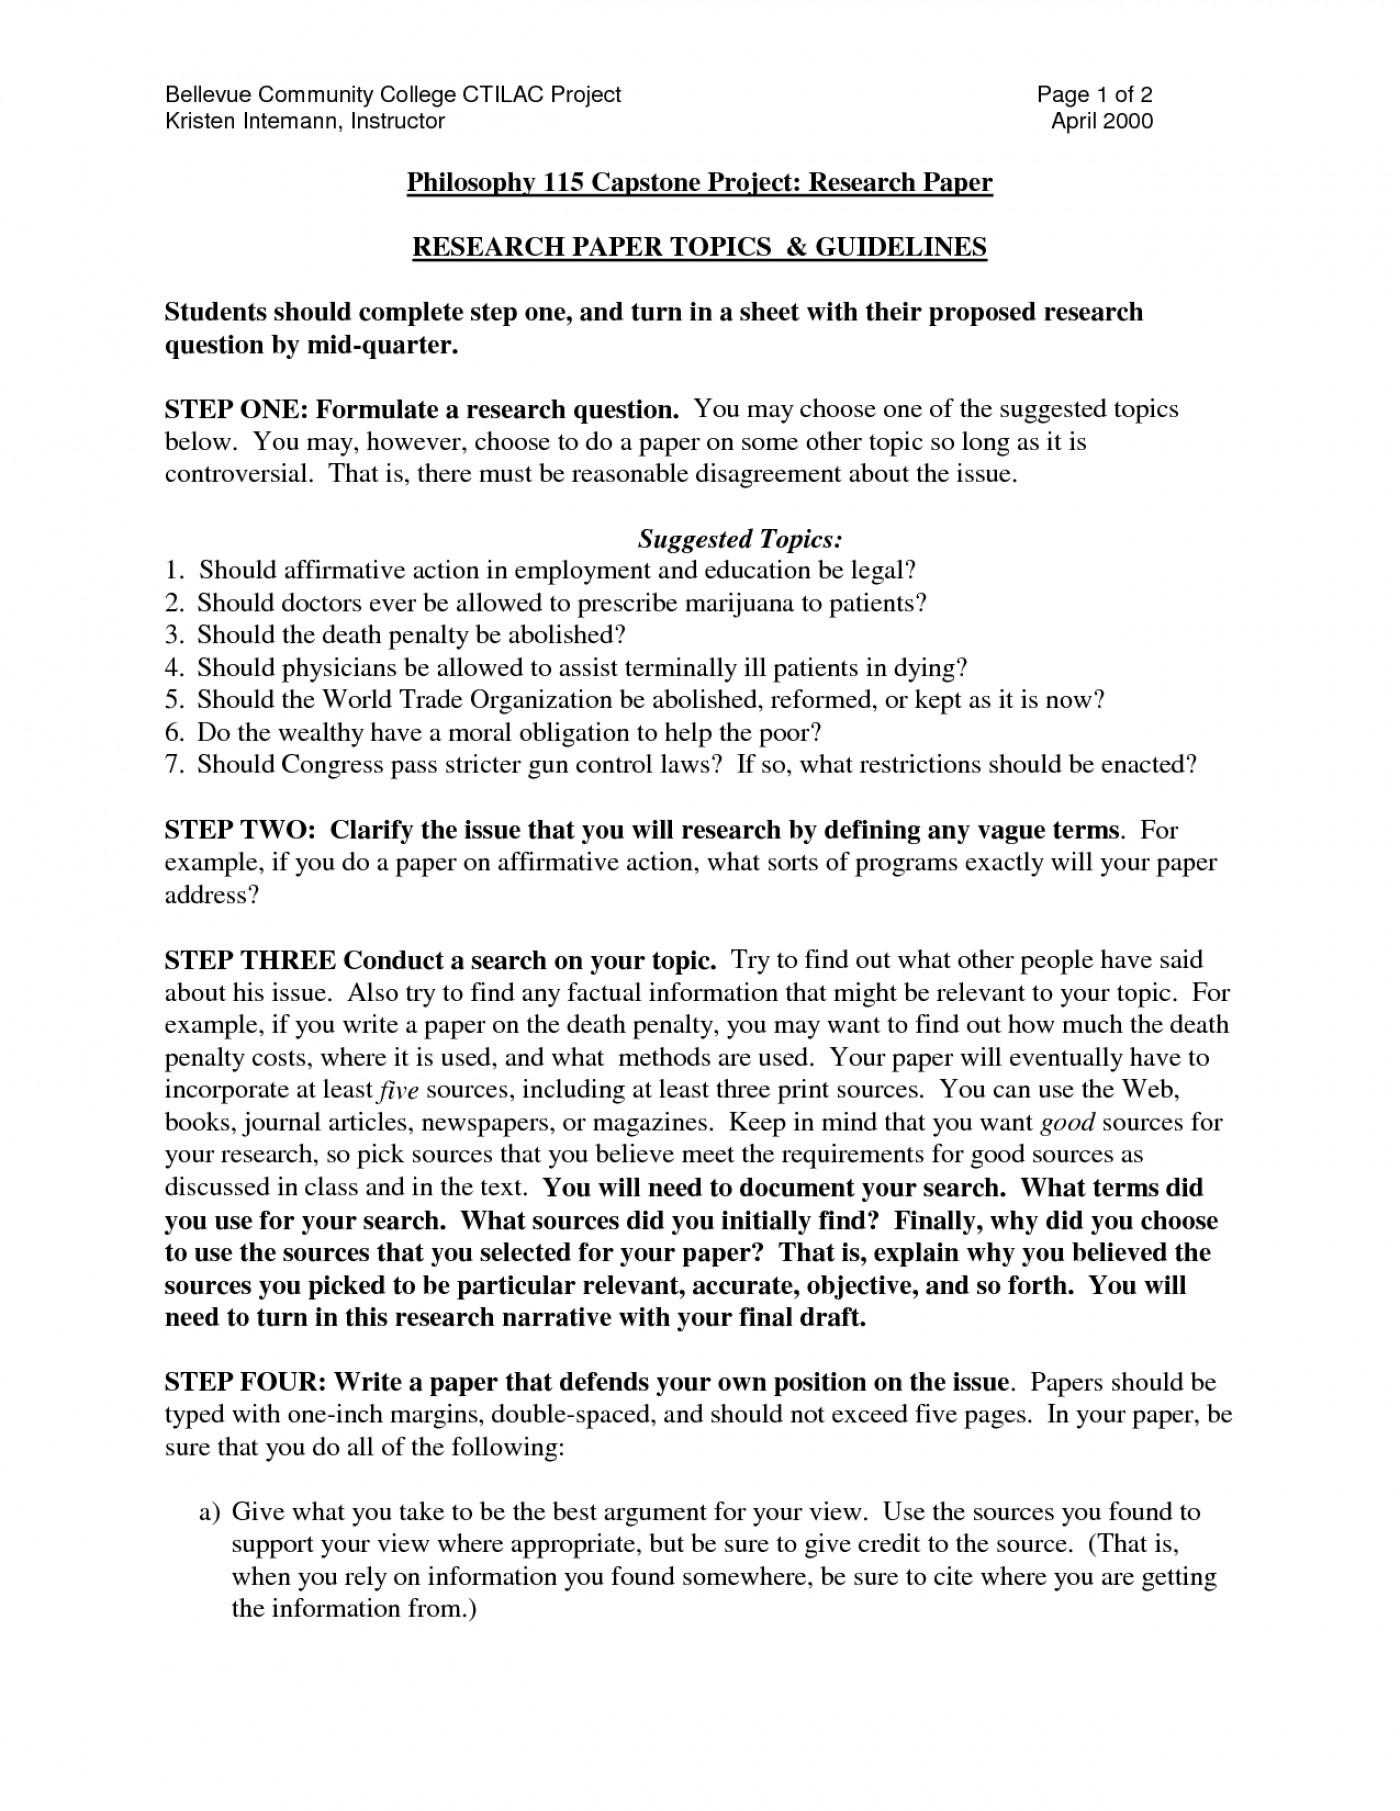 025 Research Paper Controversial Medical Topics For